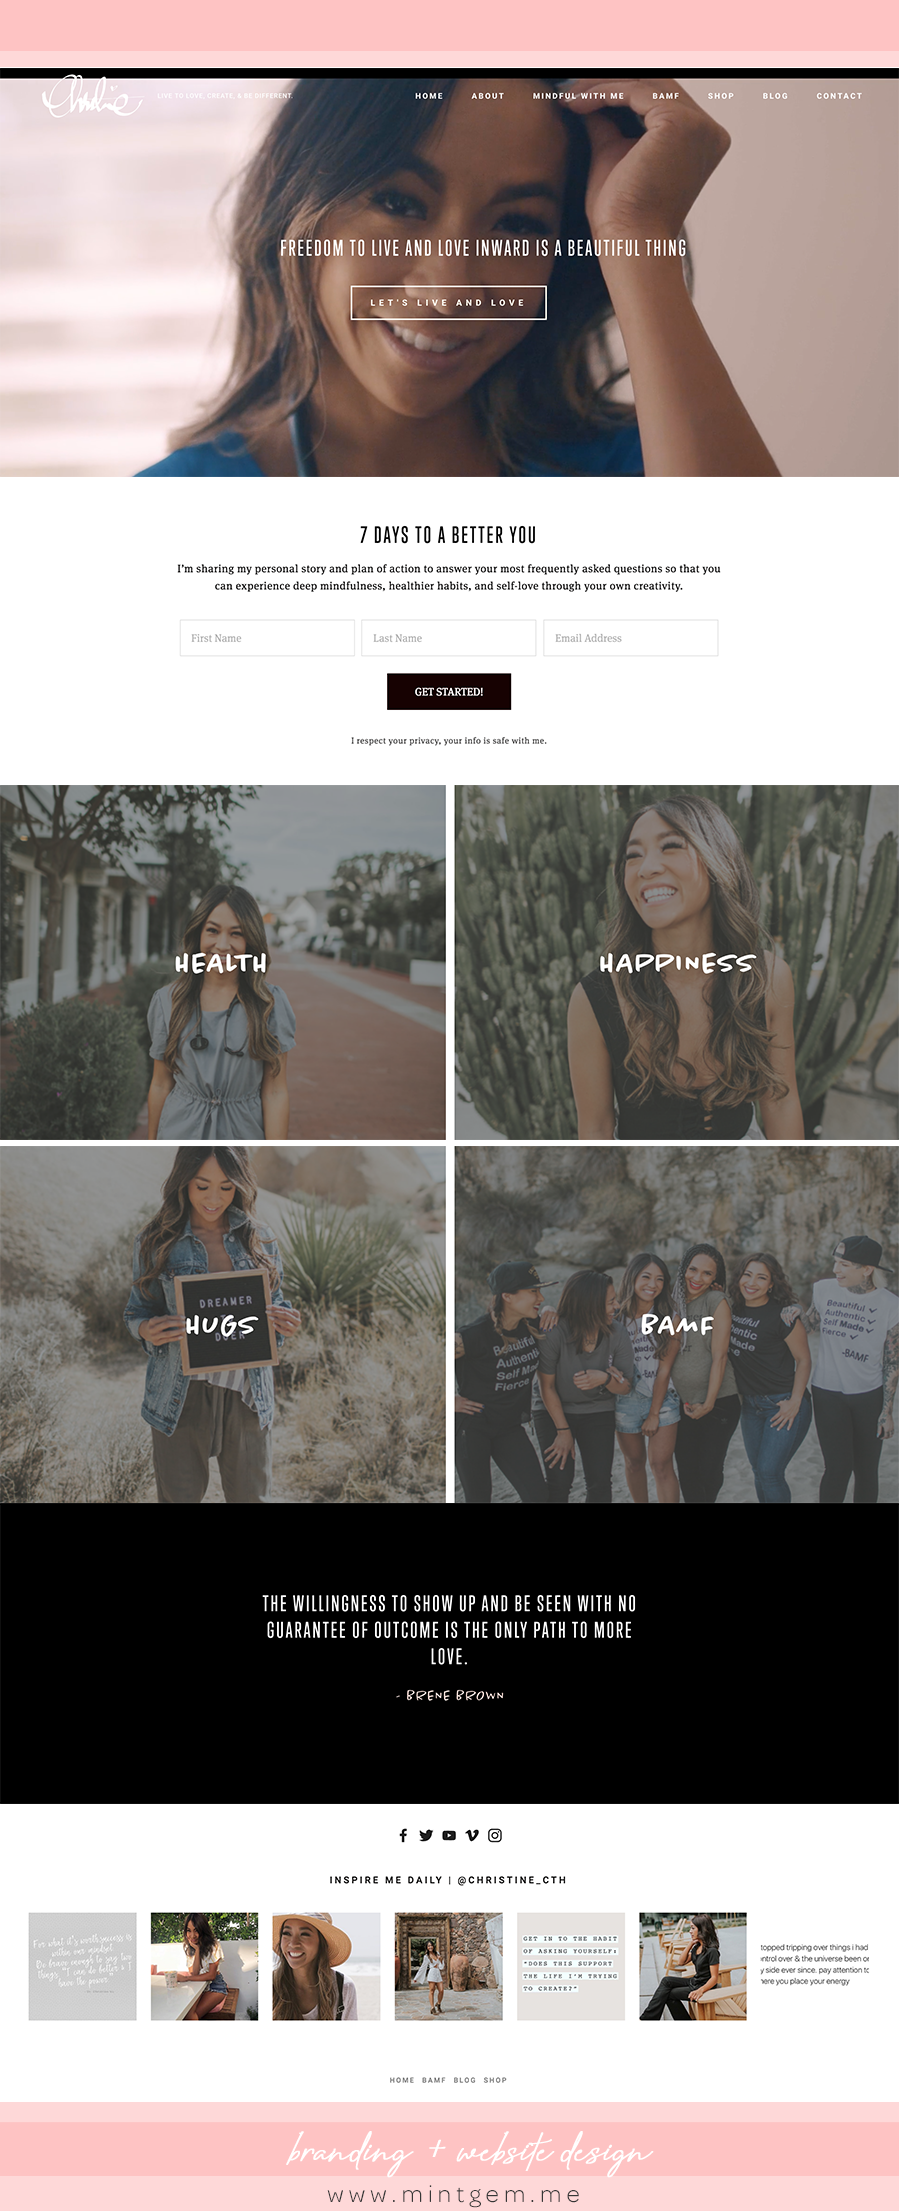 35-branding-mintgem-logo-design-for-SOULFUL-coaches-women-in-business.png